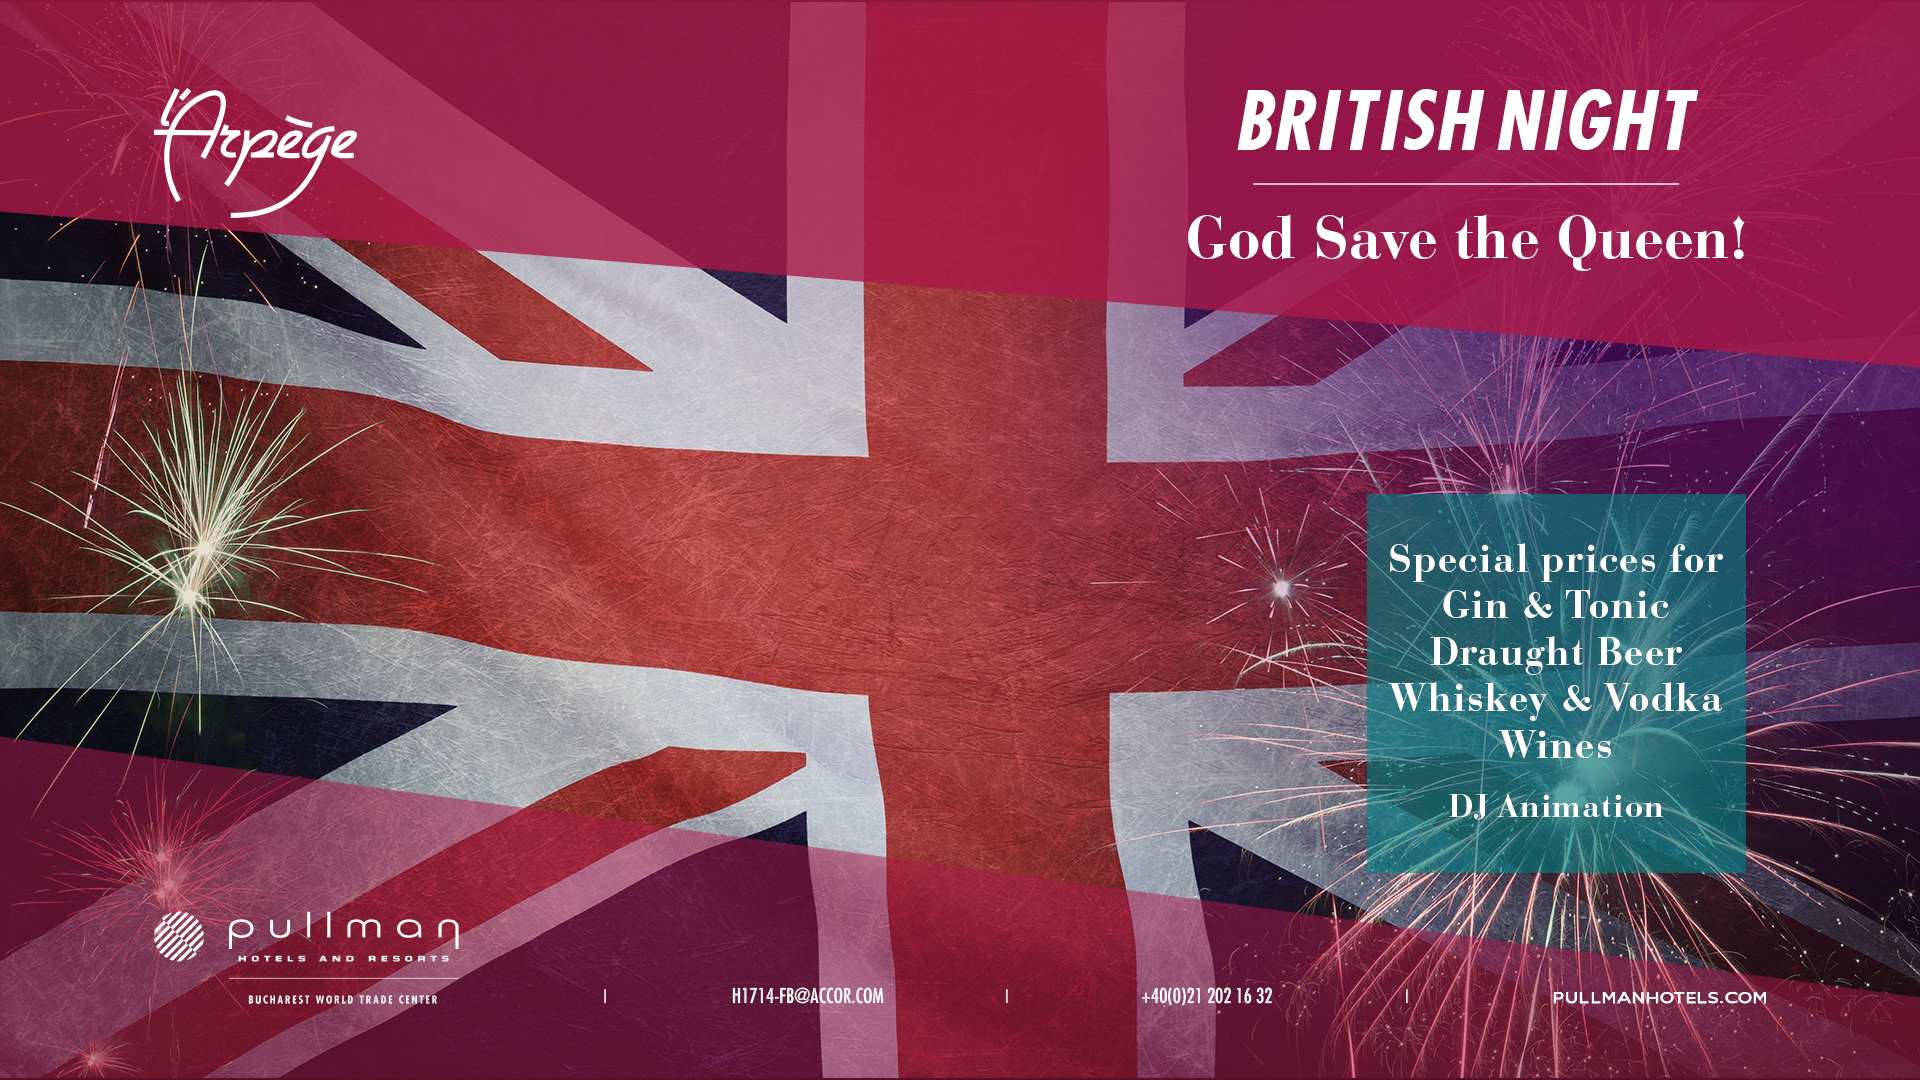 British Night God Save The Queen Brcc